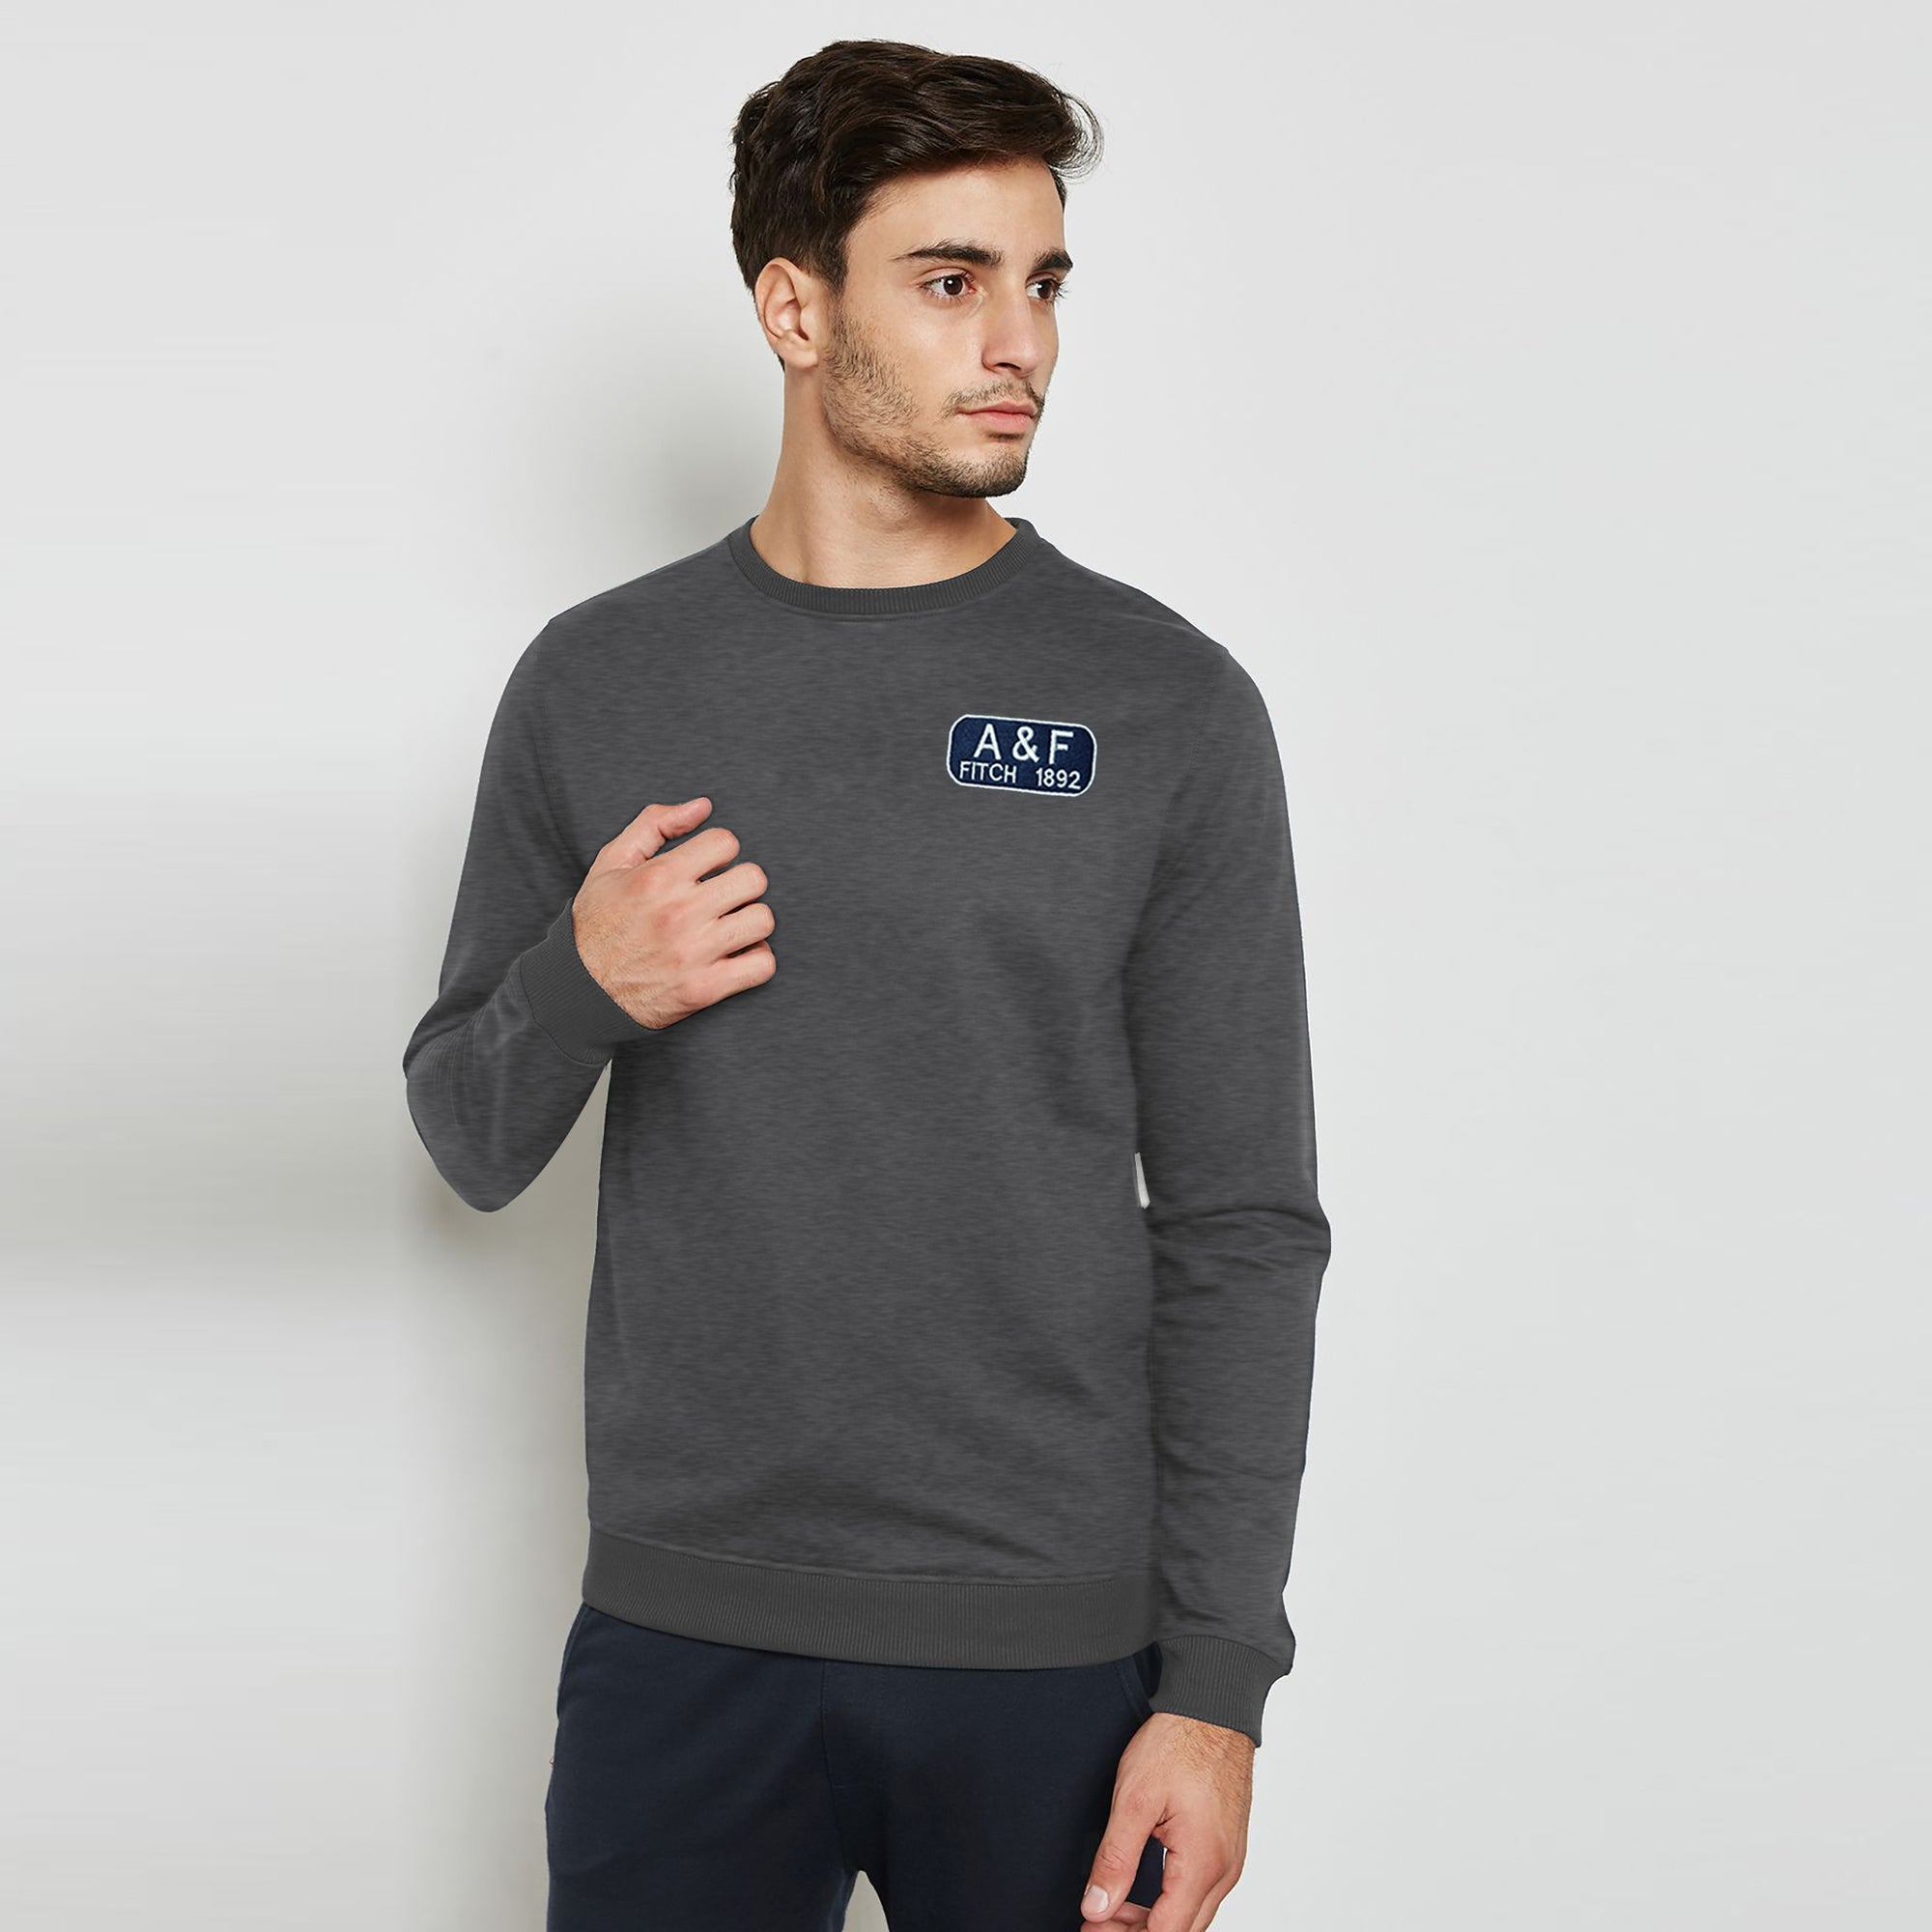 A&F Fleece Crew Neck Sweatshirt White & Navy Embroidery For Men-Charcoal Melange-BE7521